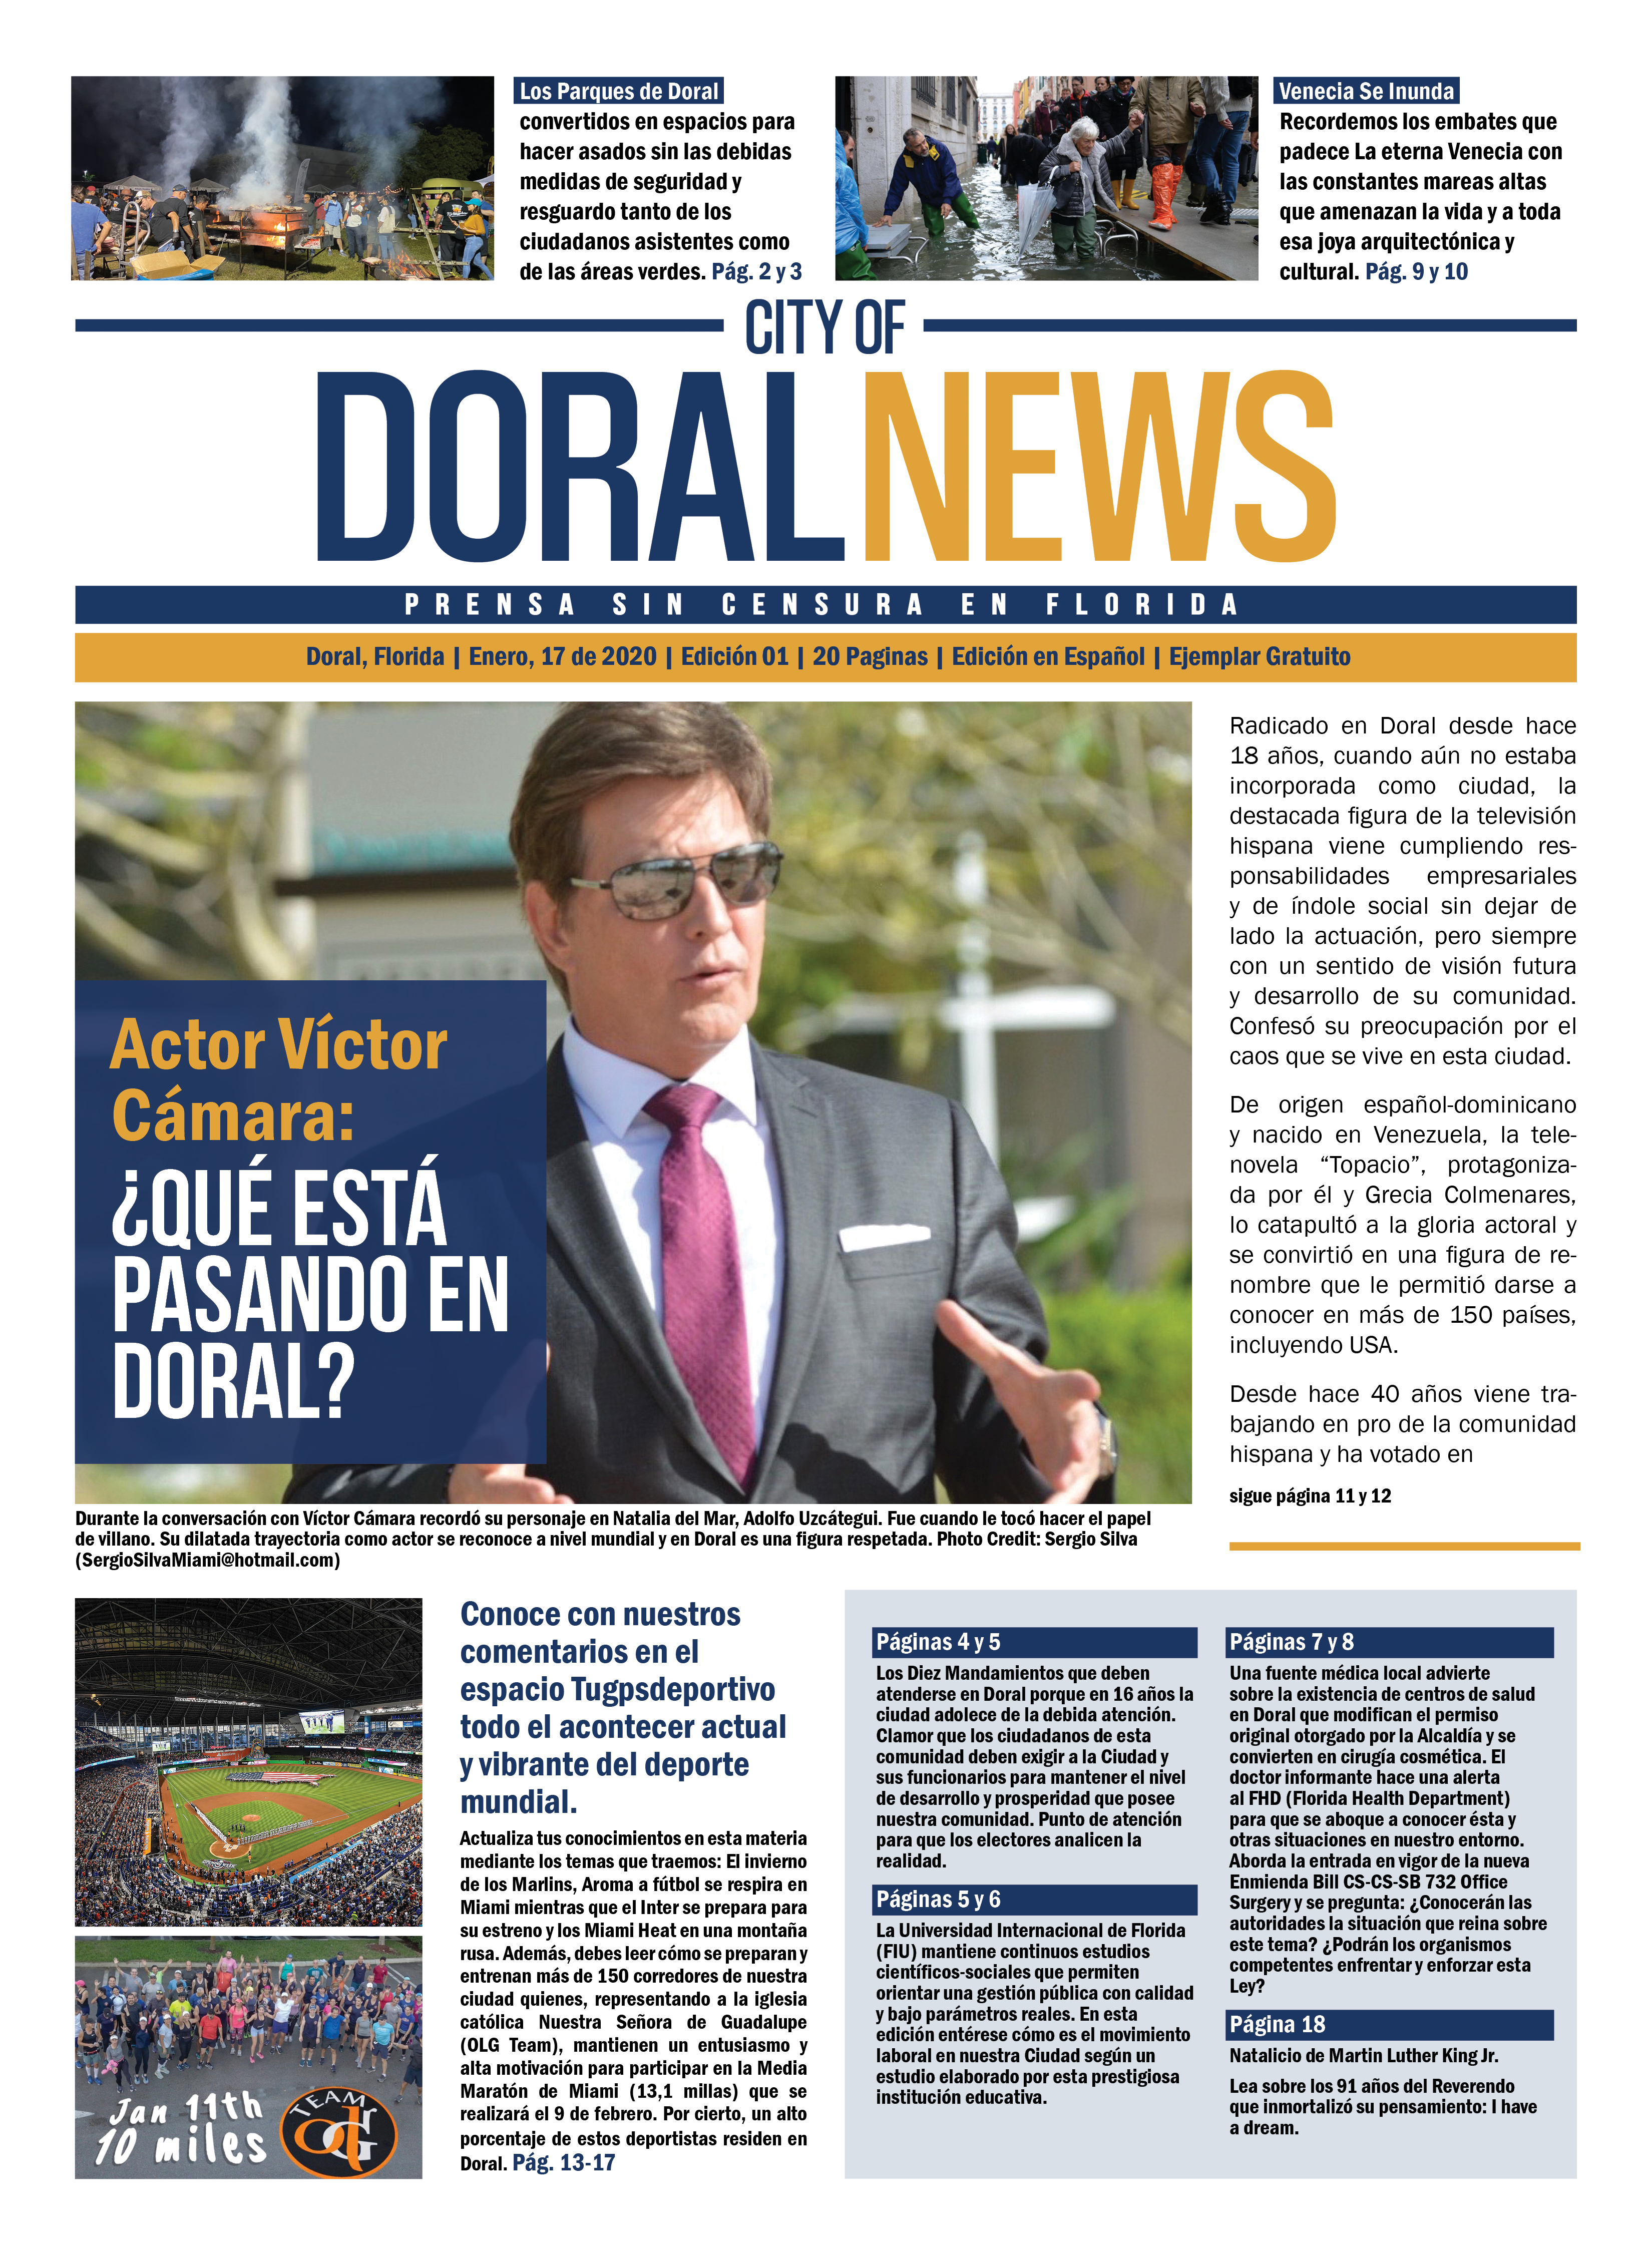 City of Doral News Edition 1 pg1